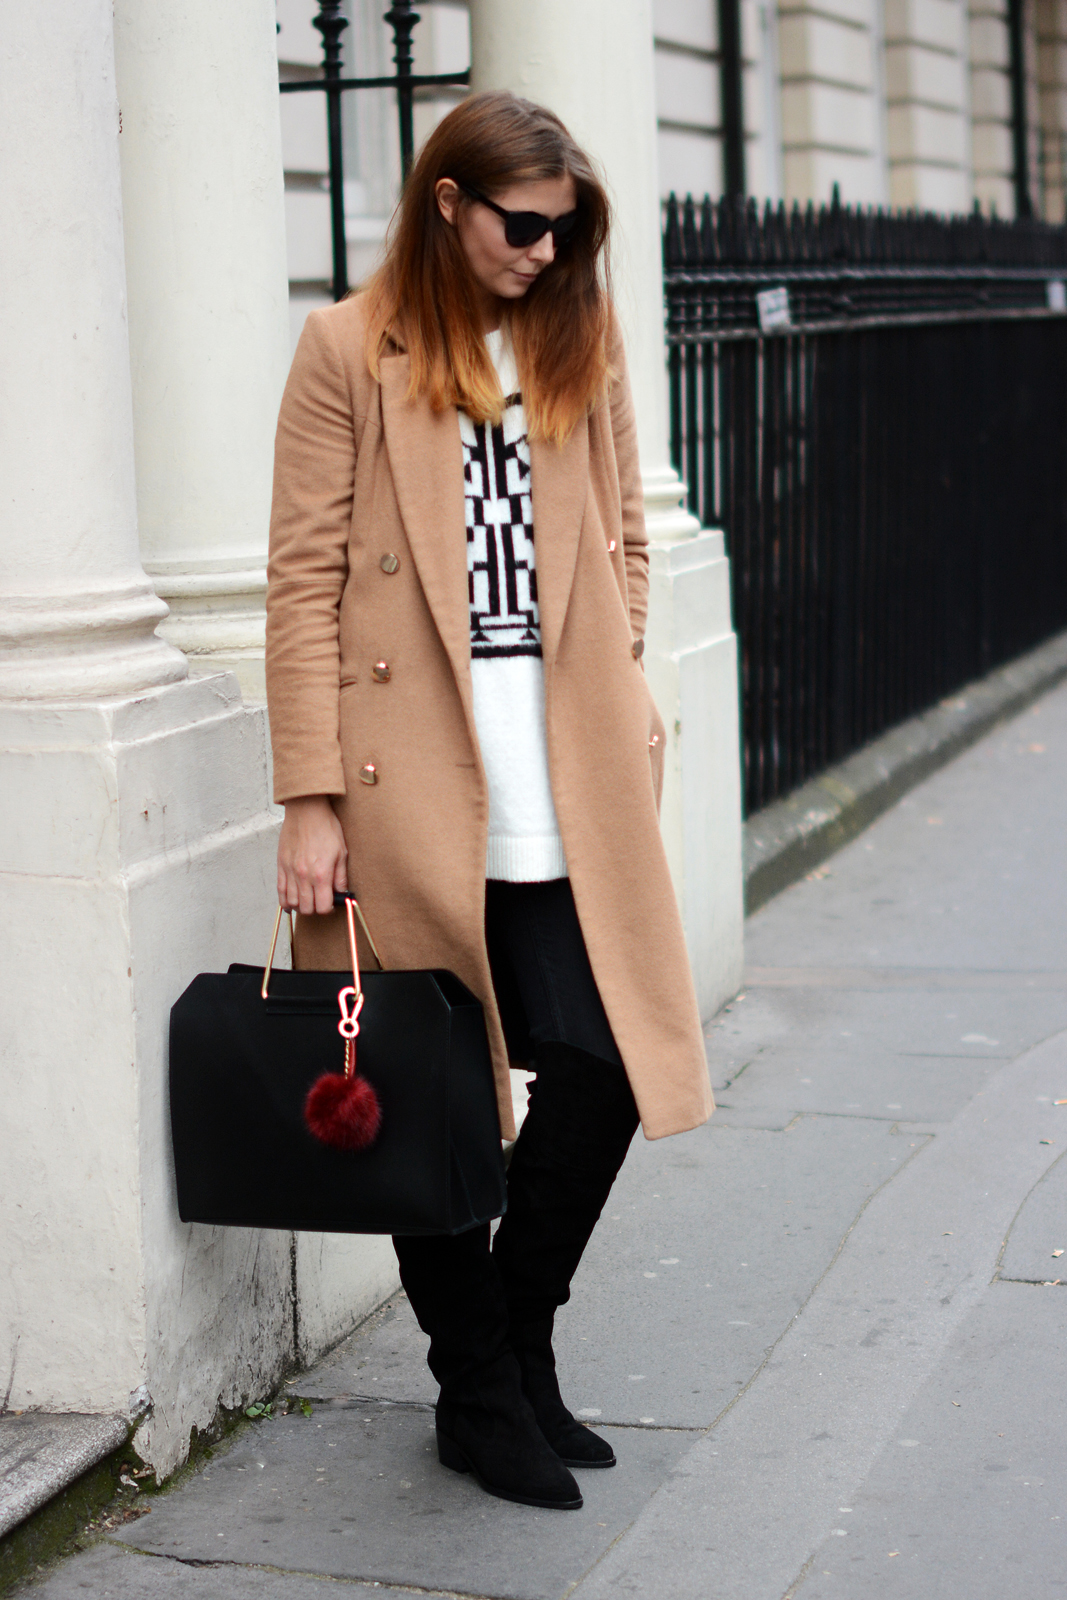 EJSTYLE - River Island double breated camel coat, aztec sweater, Black suede OTK boots, black skinny jeans, ASOS metal handle bag, fall autumn outfit